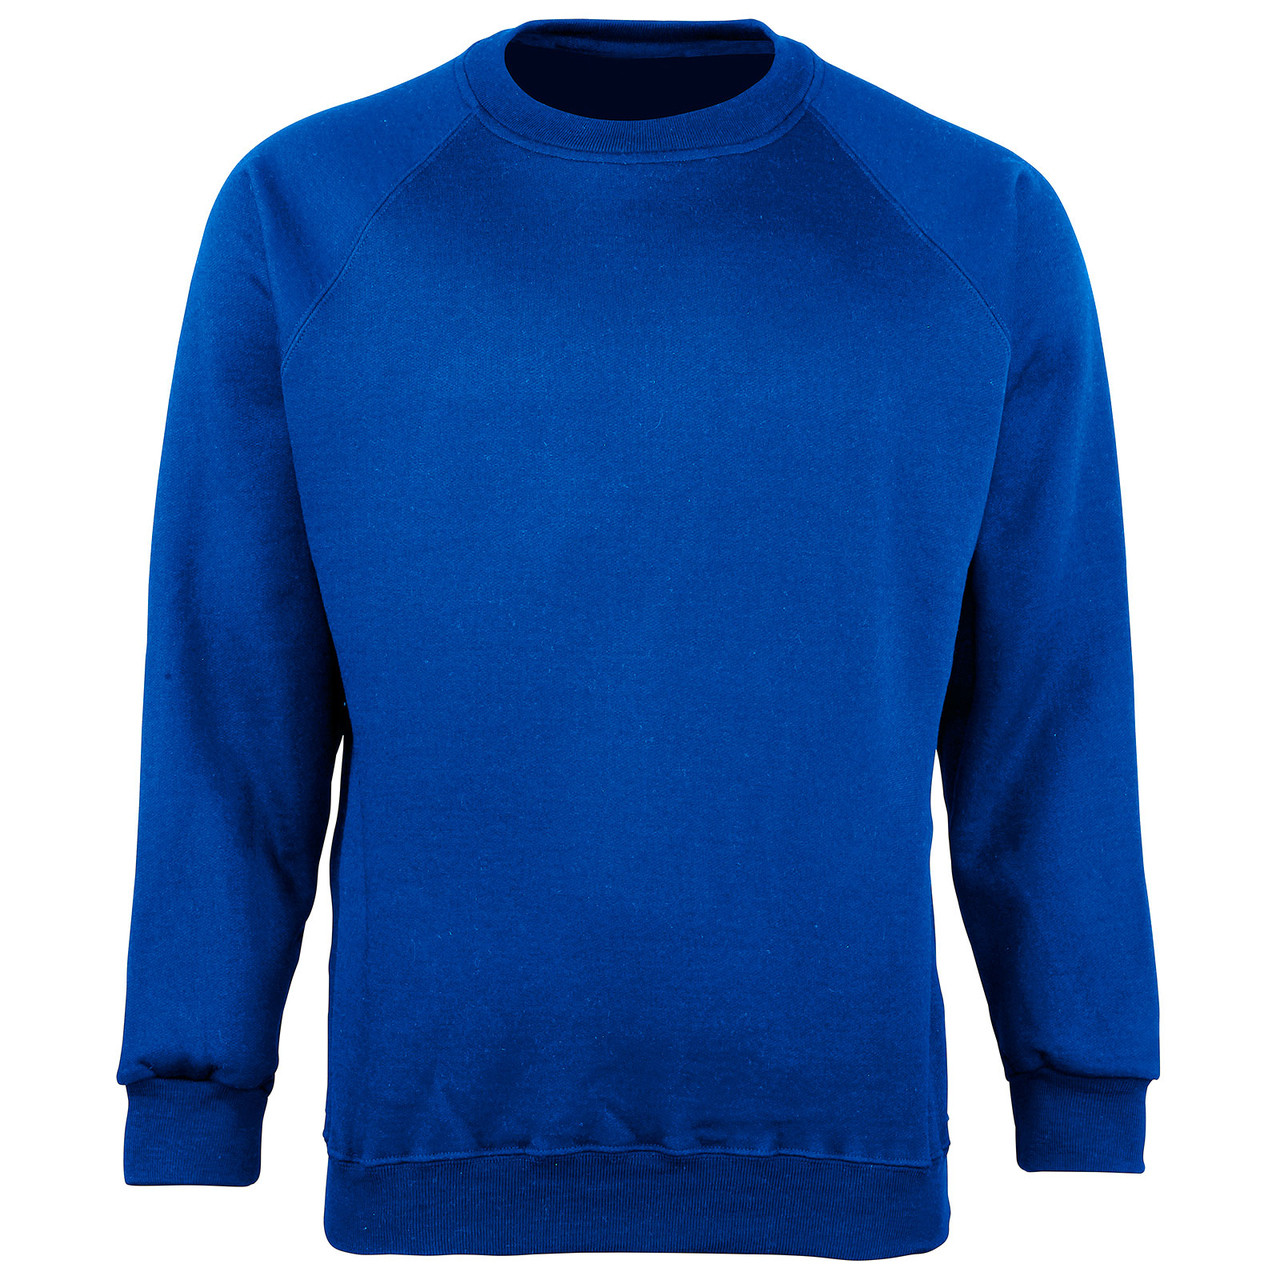 Organic Cotton School Sweatshirt - Royal Blue